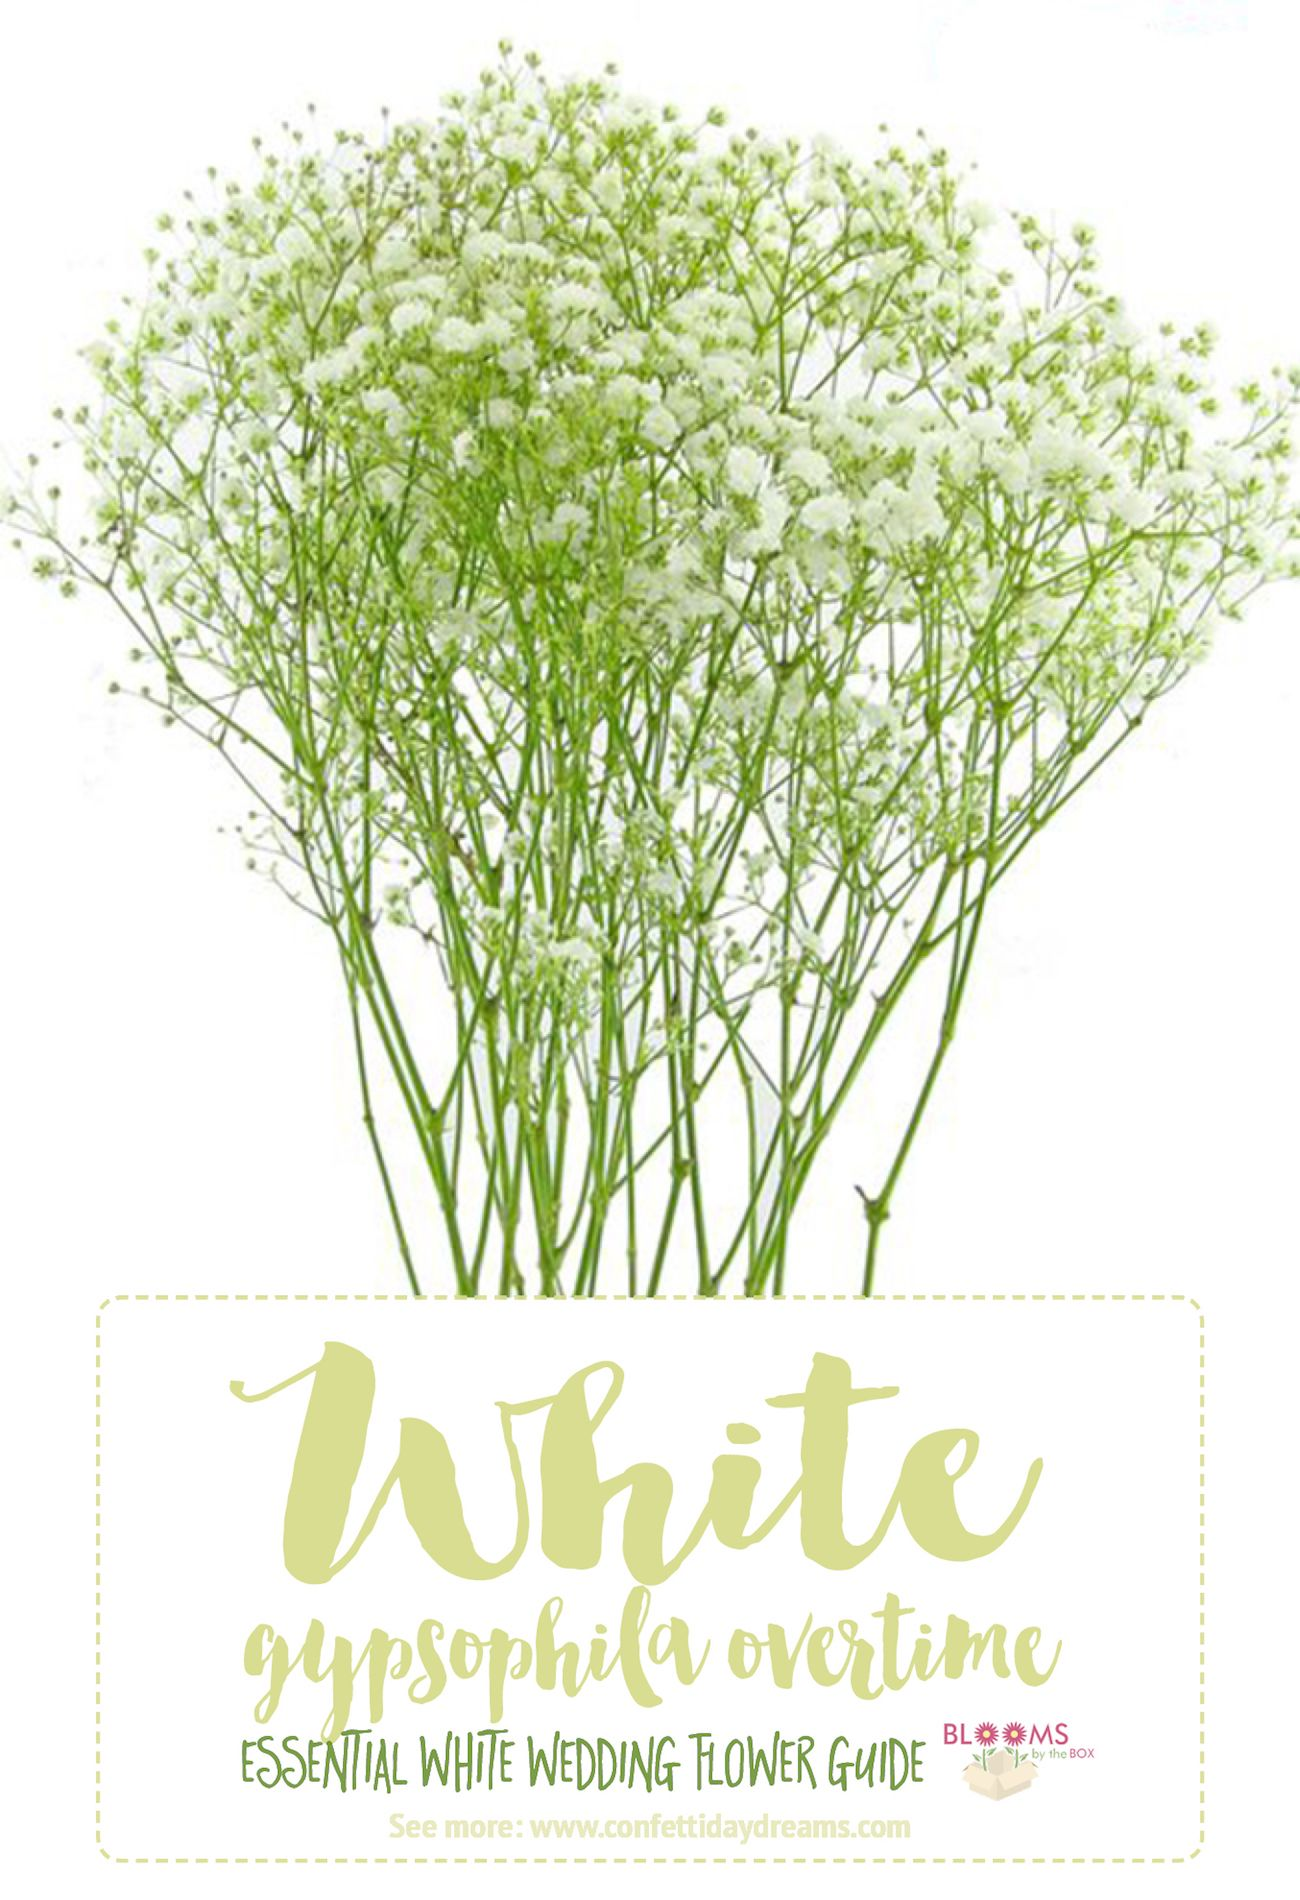 Essential white wedding flower guide names types pics all white wedding flowers httpconfettidaydreamstypes mightylinksfo